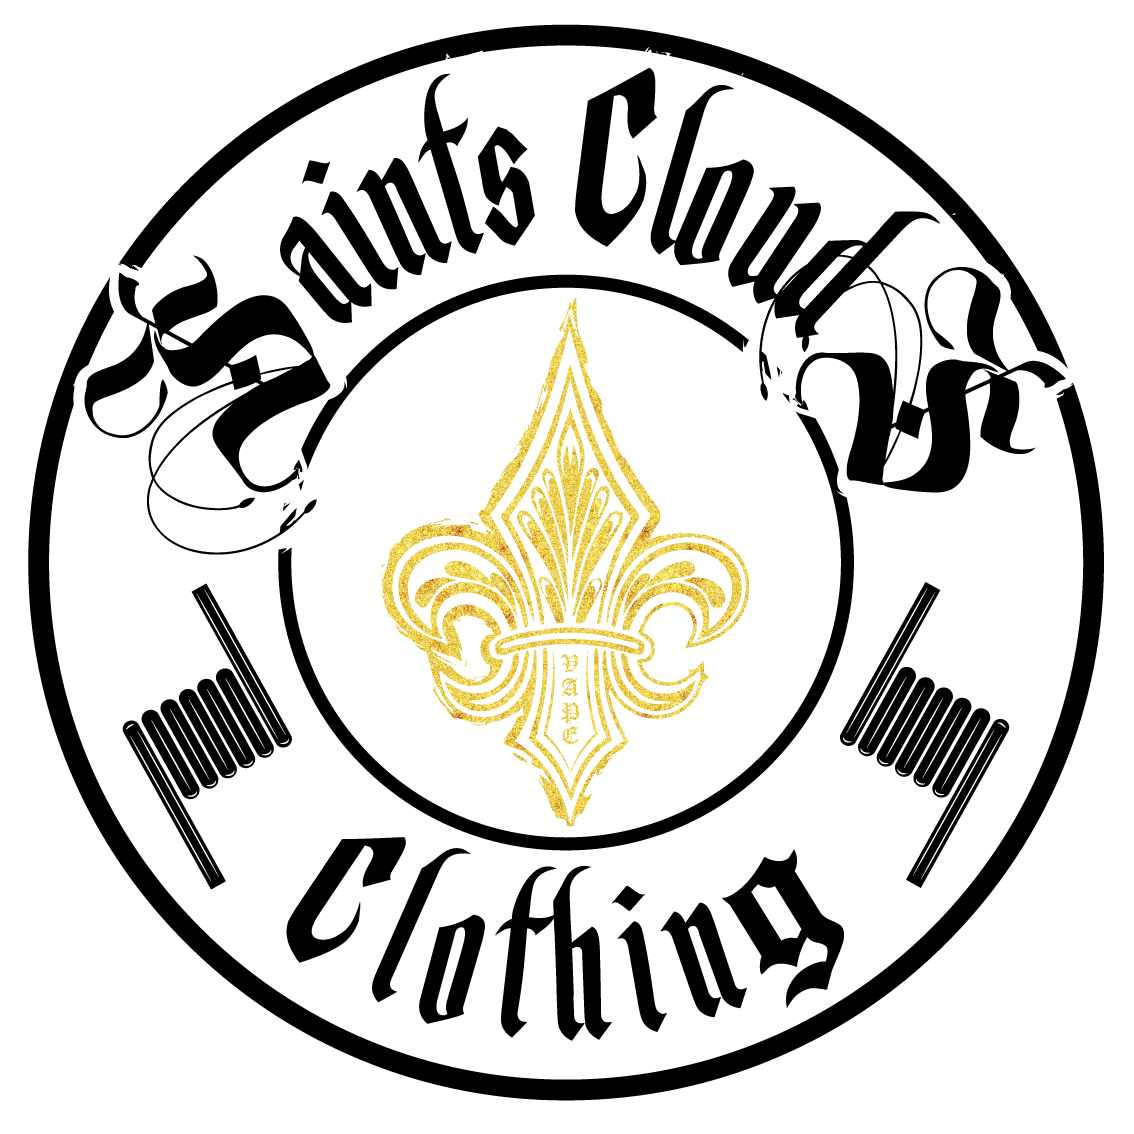 Saint Cloudz Clothing